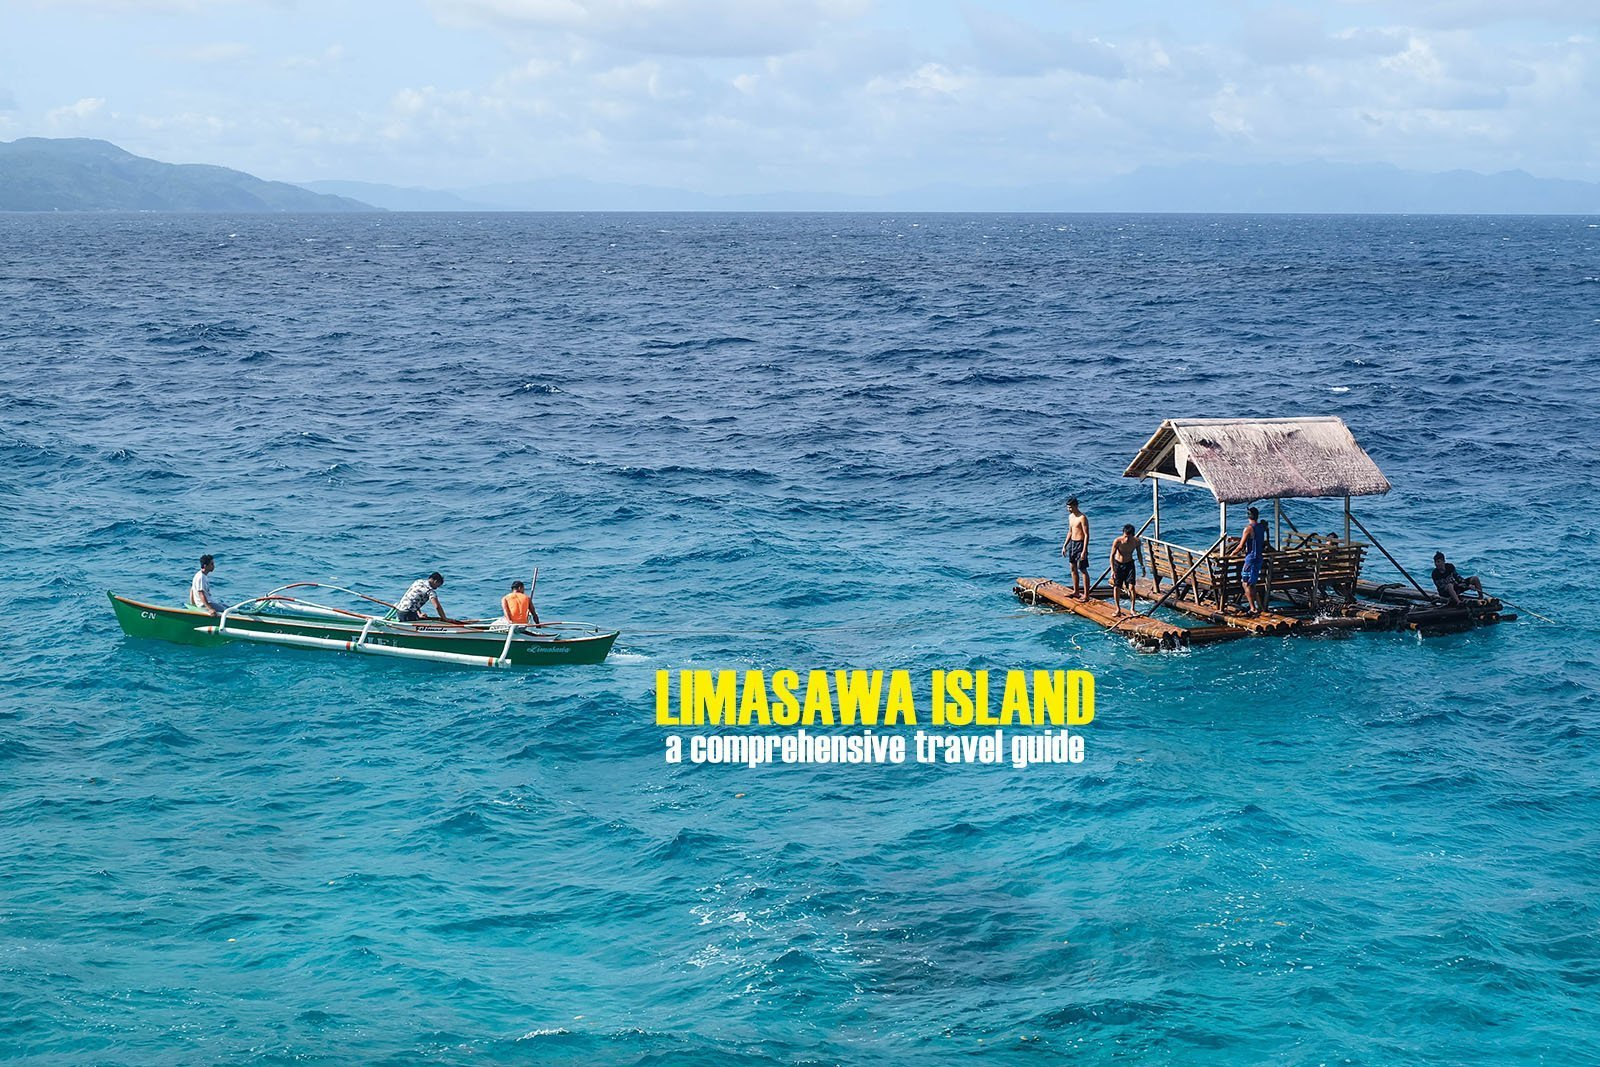 Limasawa Island Travel Guide: Things to Do, Where to Stay & Sample Itinerary